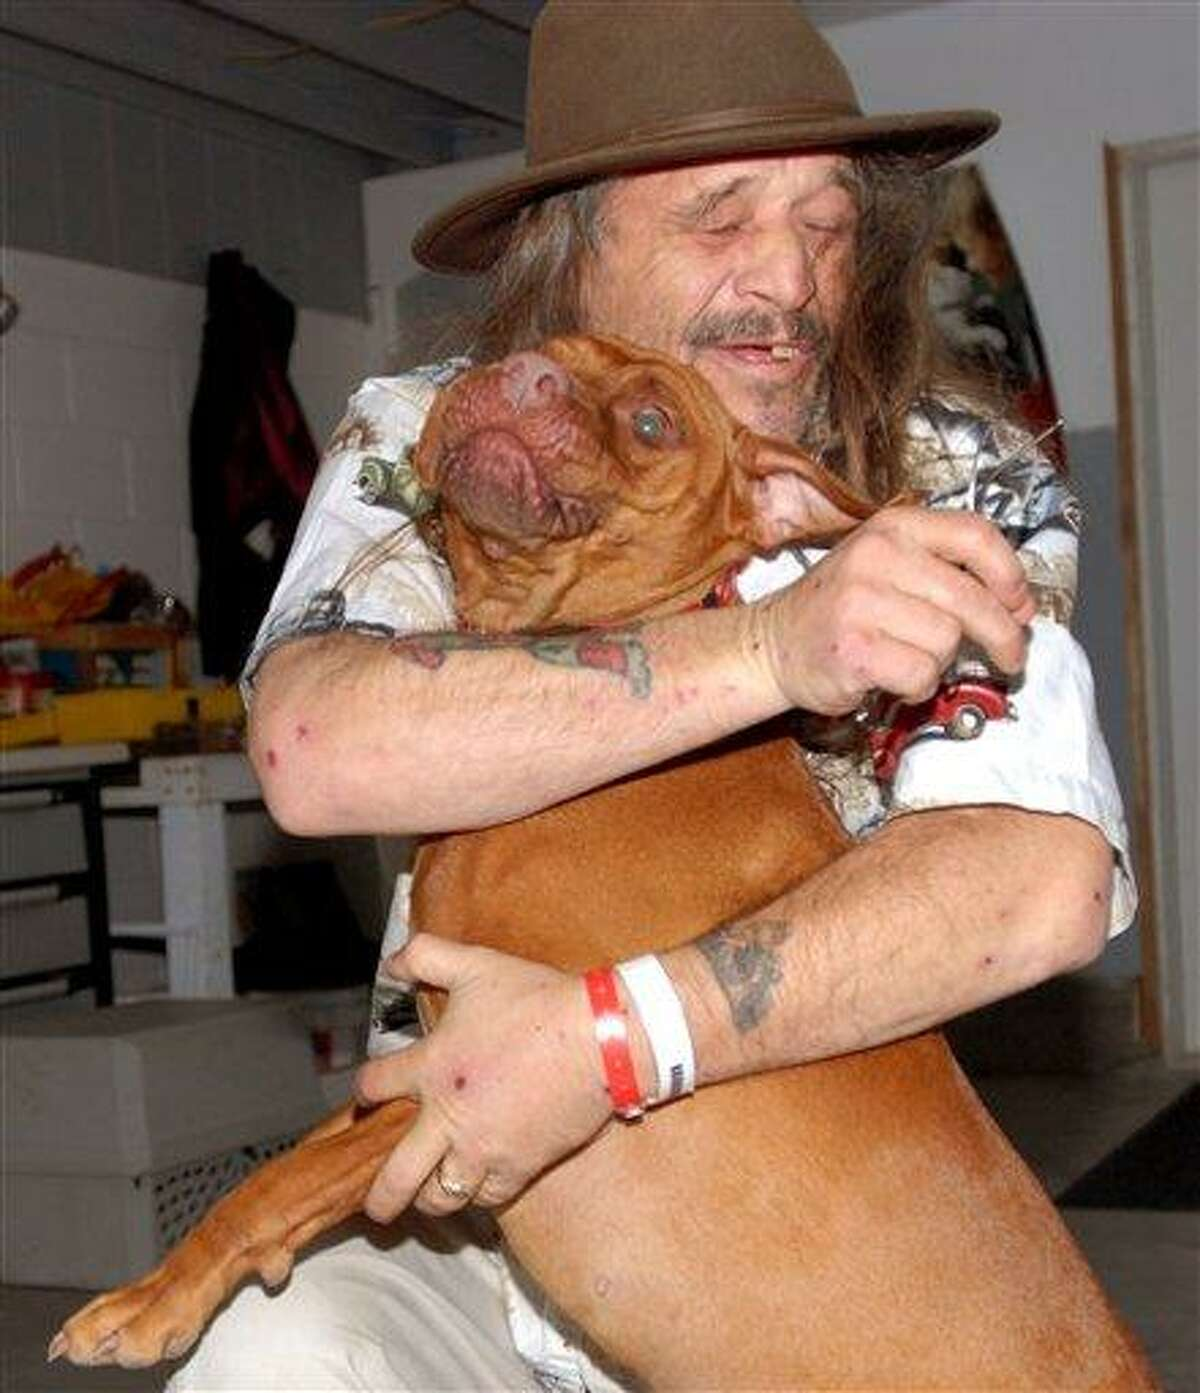 Dan Conne hugs his dog, Jesse, Sunday at the pound in Gold Beach, Ore., where he was with her after they spent six night lost in the woods. Conne, his wife, Belinda, and son, Michael were airlifted out of the Rogue River-Siskiyou National Forest on Saturday and spent the night at the Curry General Hospital recuperating from their ordeal. The dog walked out with a ground search team. Conne said at one point he thought he might have to kill the dog for food, but his wife said they never could have done that. Associated Press